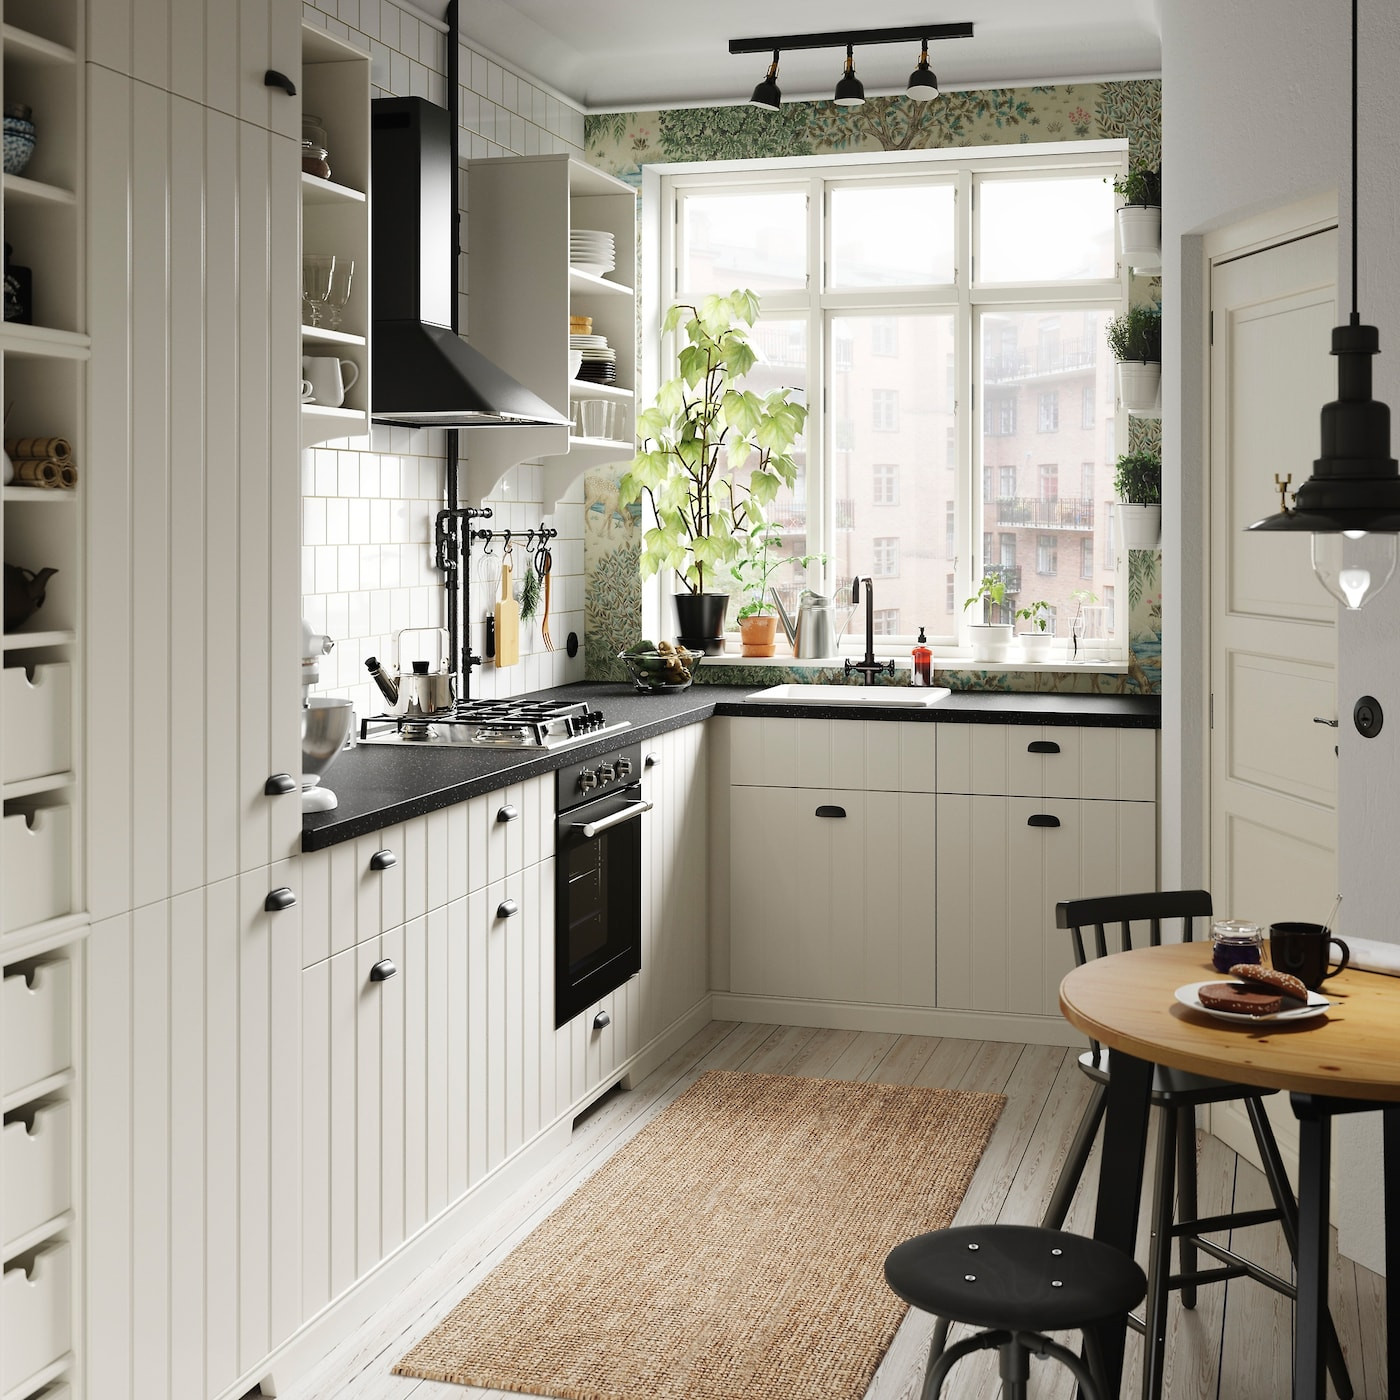 Best ideas about Ikea Small Kitchen Ideas . Save or Pin Kitchens Kitchen Ideas & Inspiration Now.